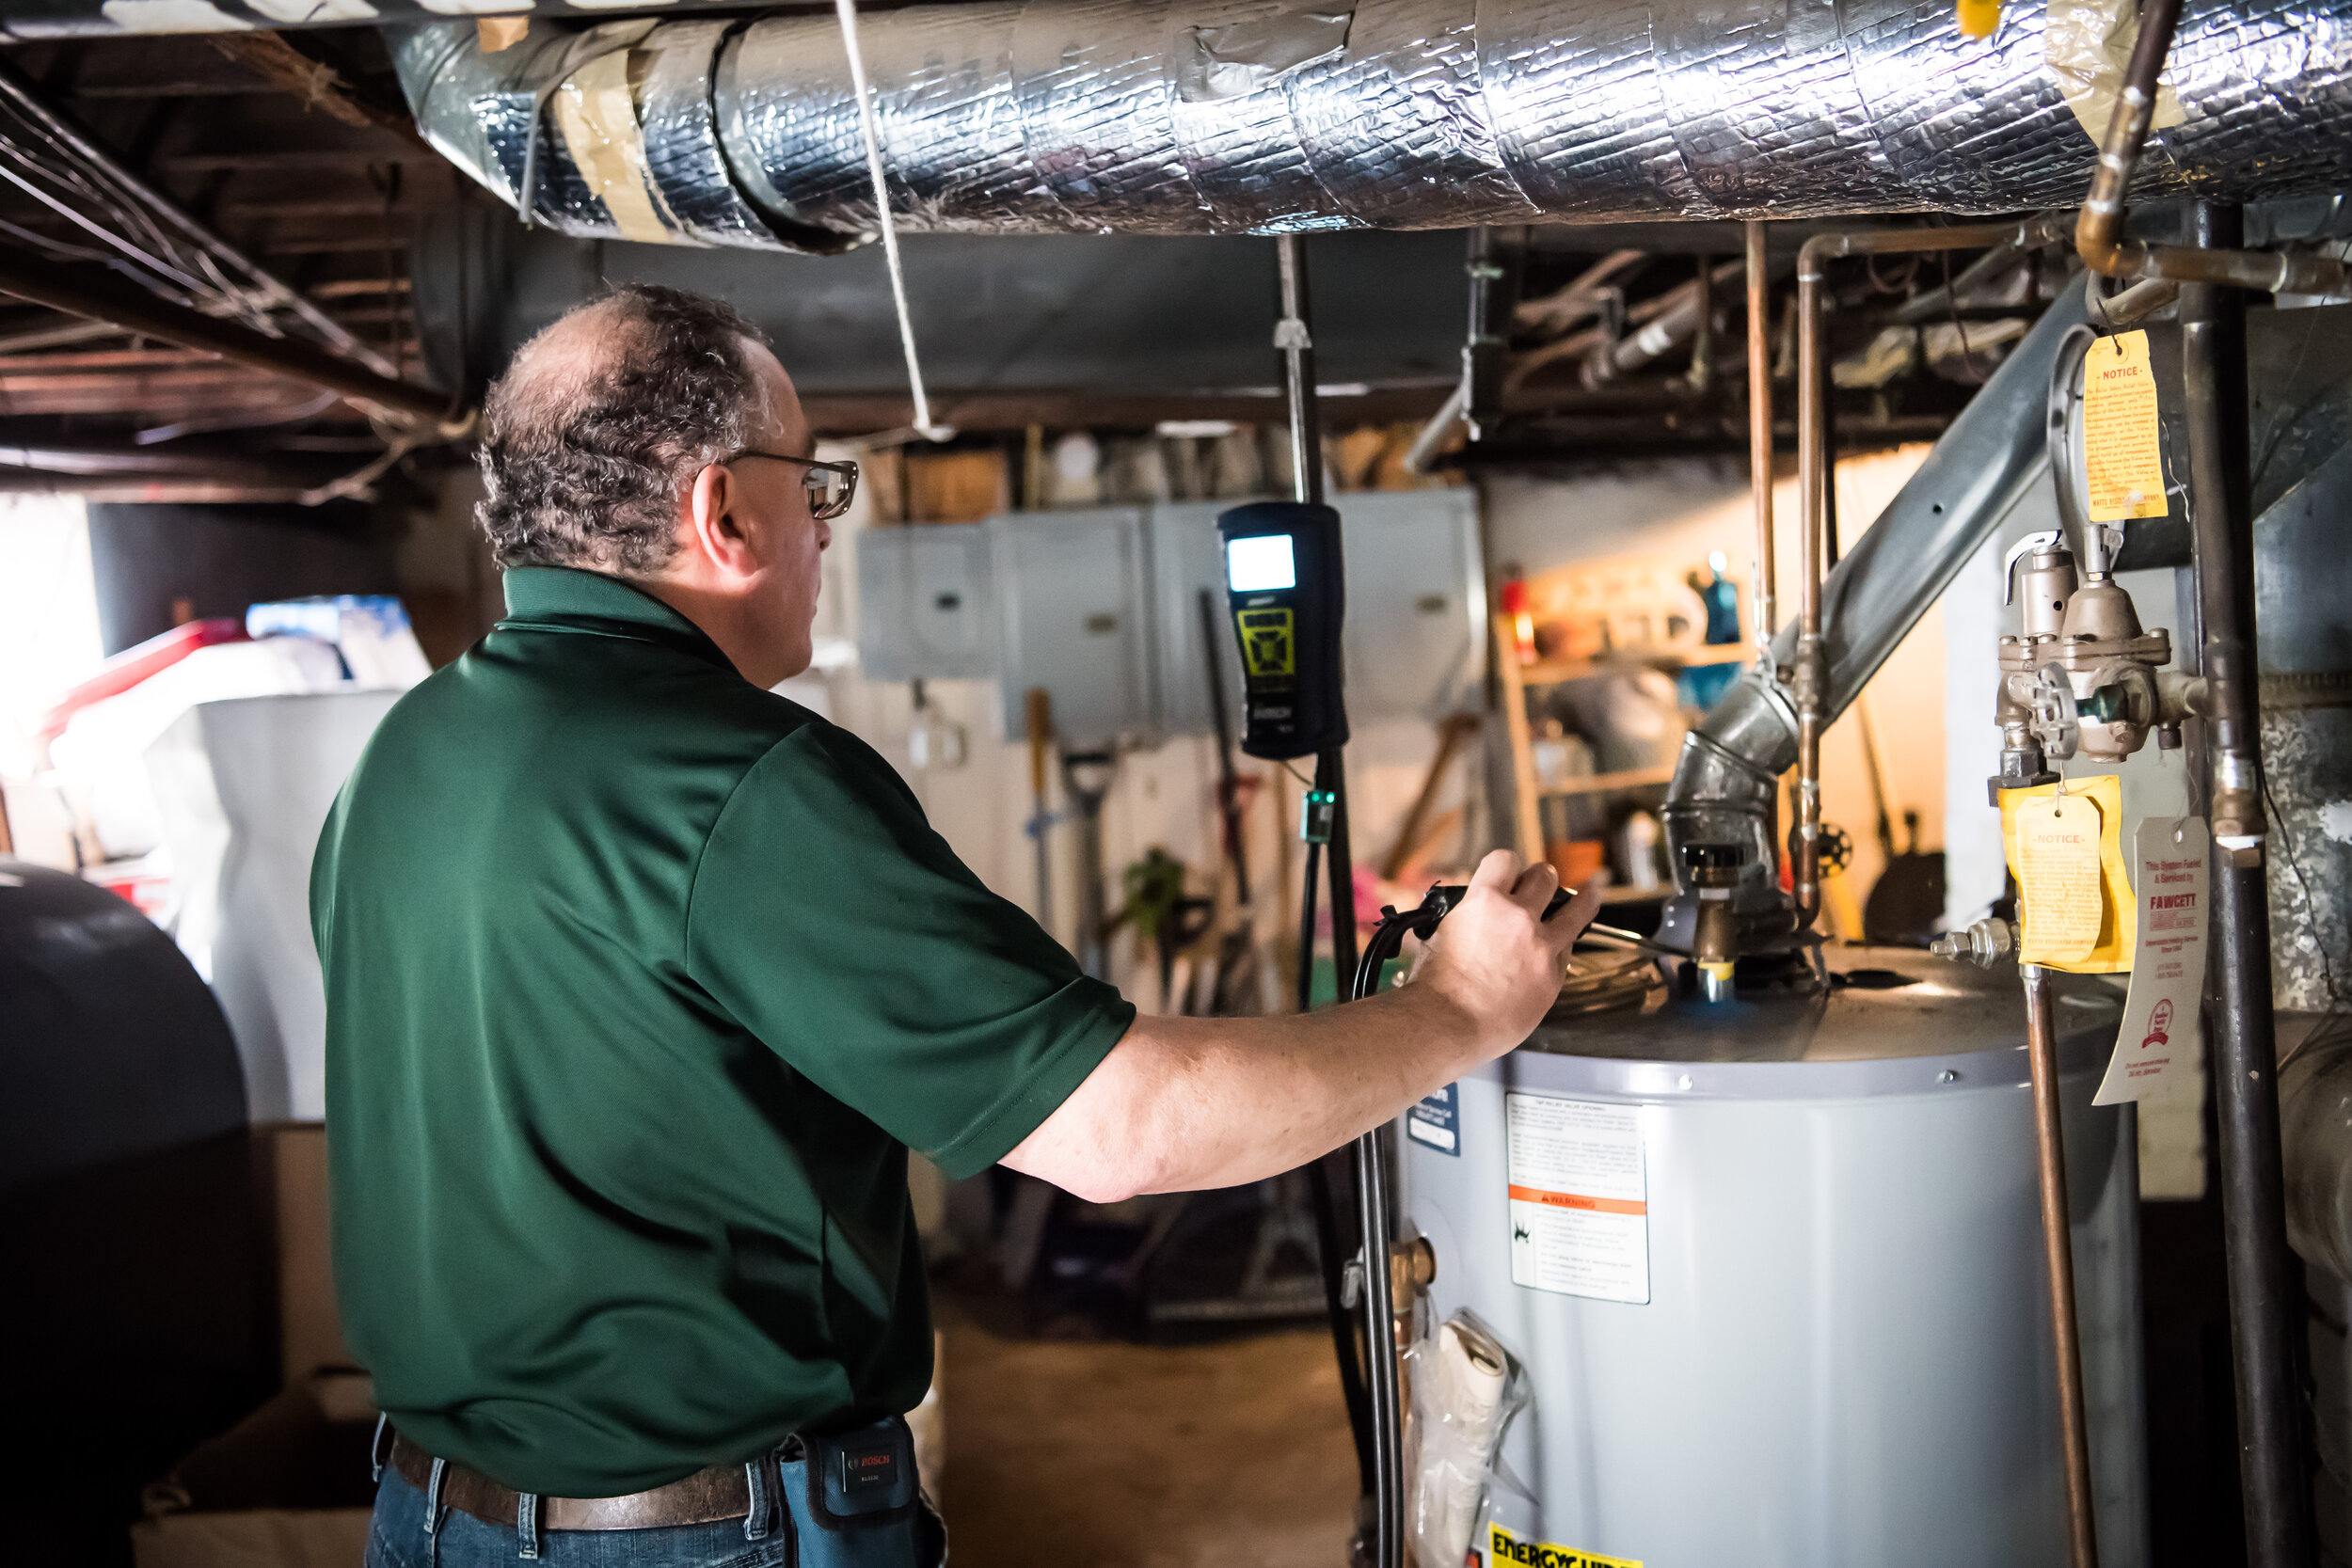 Our Home Energy Specialist will test your heating and hot water system to ensure it's running safely and efficiently.